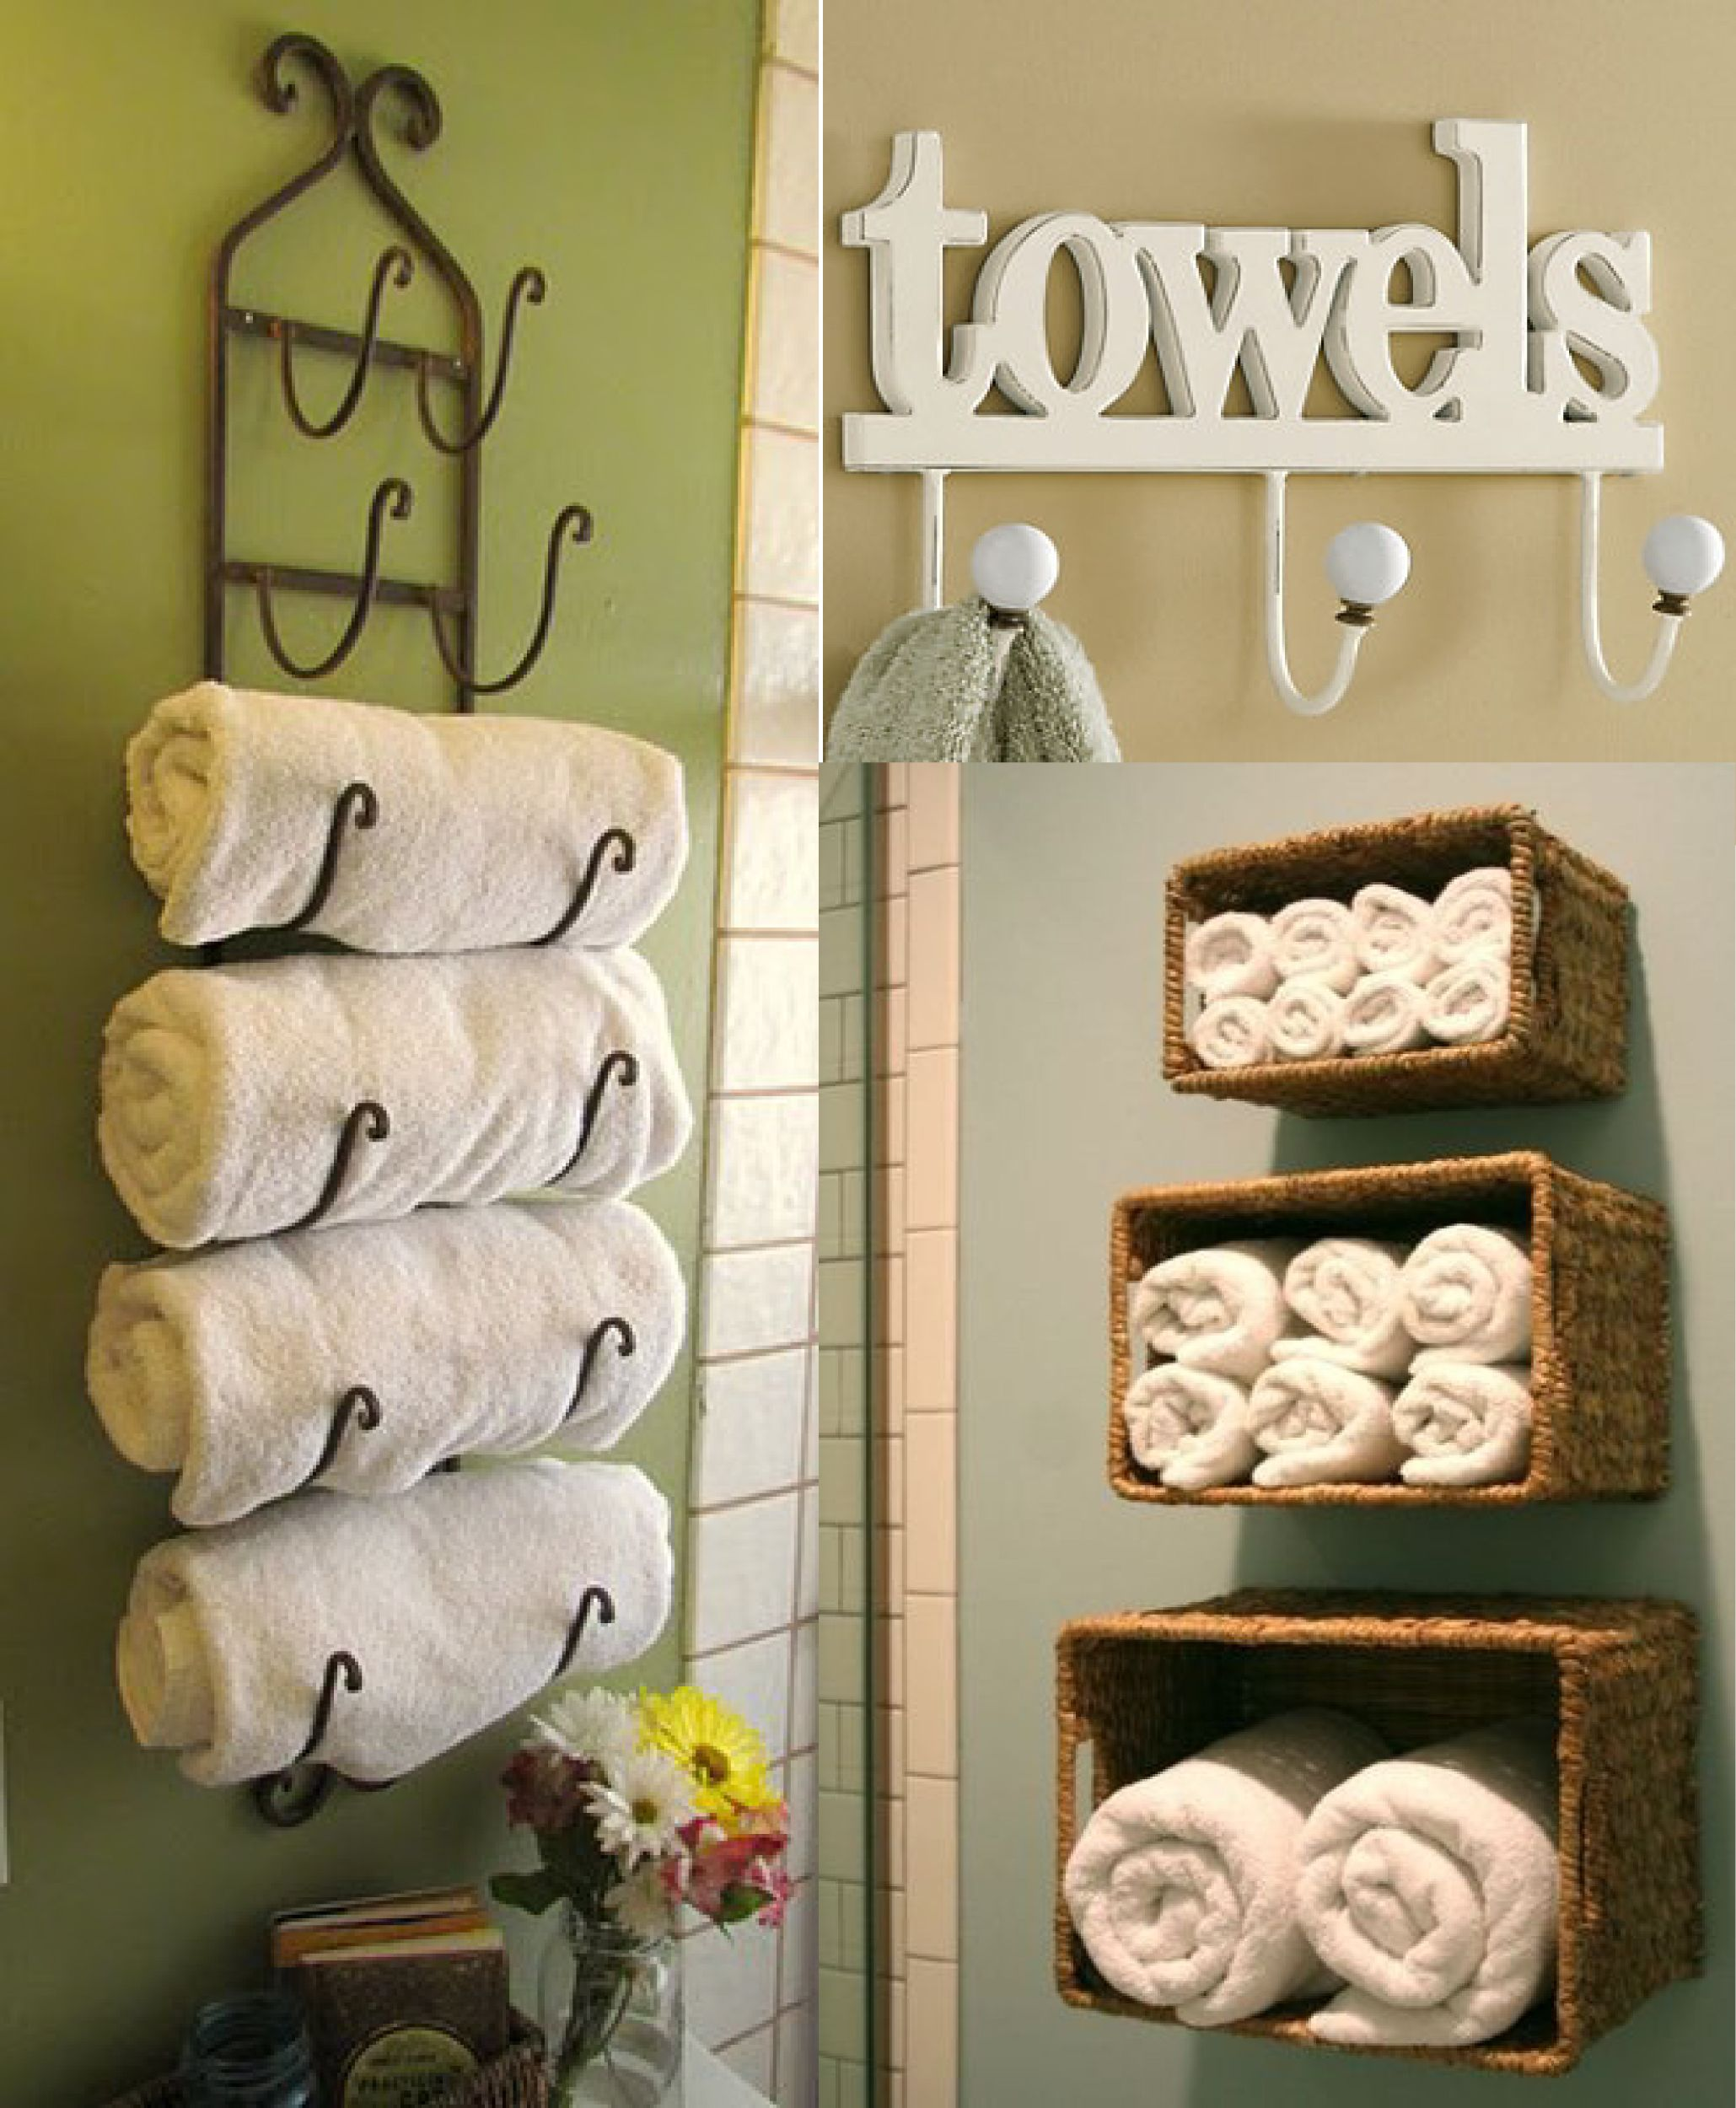 Bathroom Storage Ideas Pinterest By Shannon Rooks Corporate - Bath towel sets for small bathroom ideas